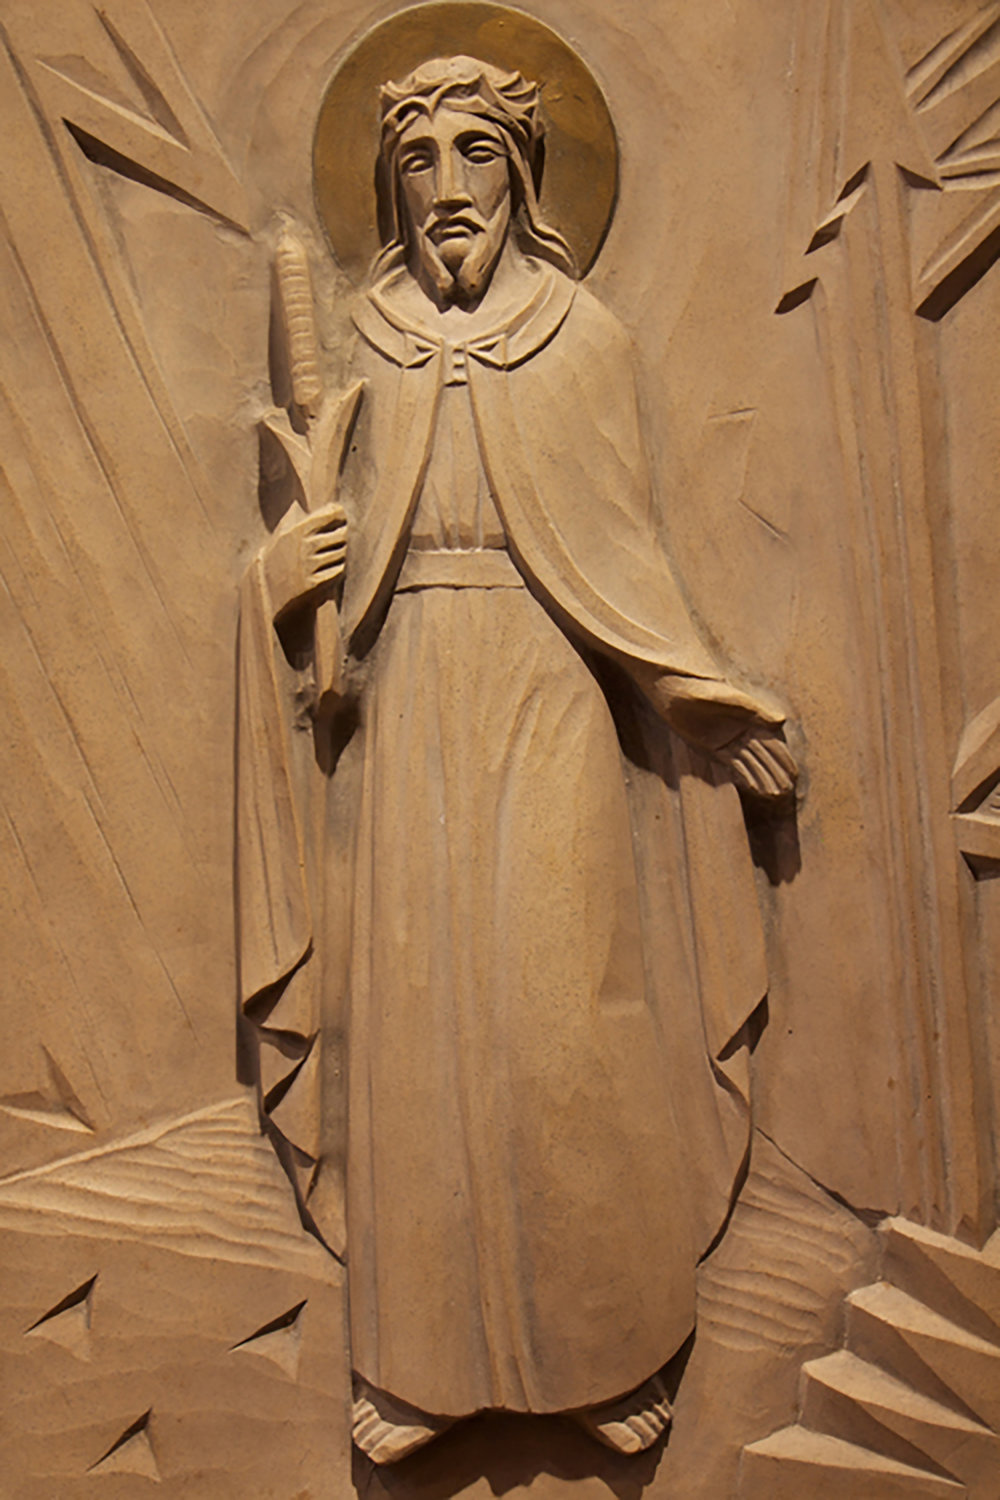 Figure 4: Station I: The Lord's Condemnation to Death; cast stone, Glencairn Museum.